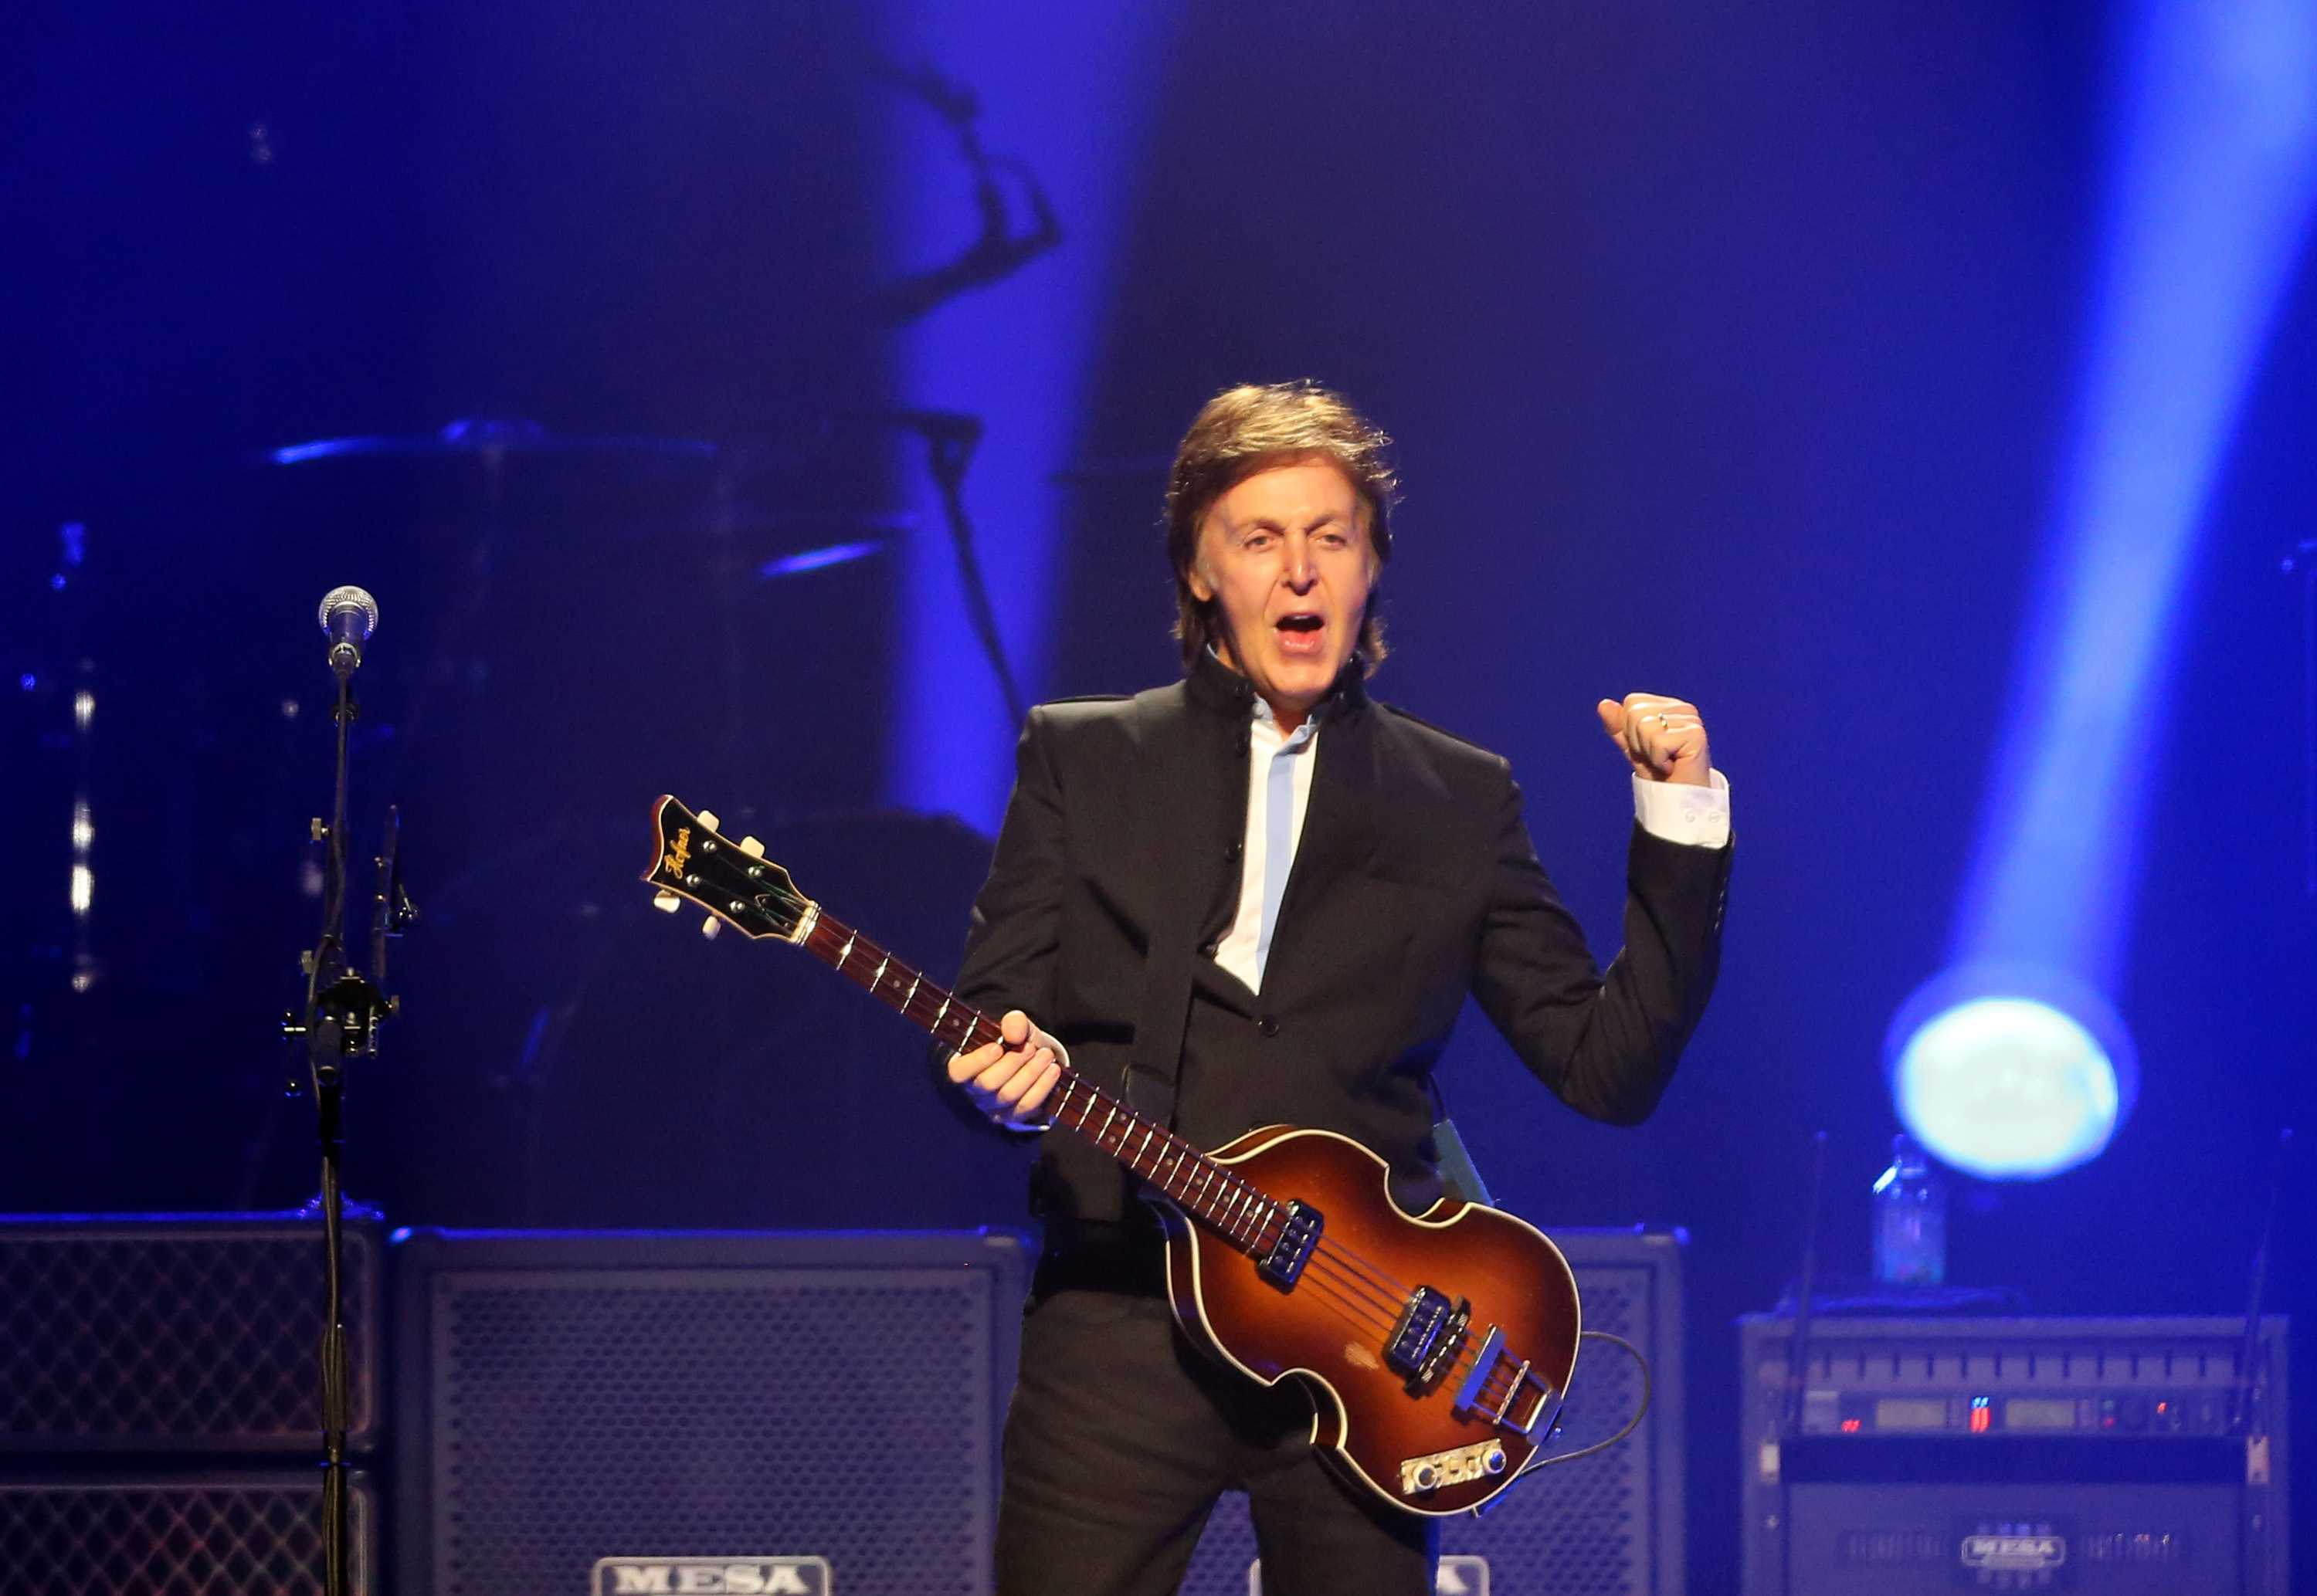 Paul McCartney opens his Out There tour at the Amway Center in Orlando. The former Beatles artist joked with late night host Jimmy Fallon that he invented the